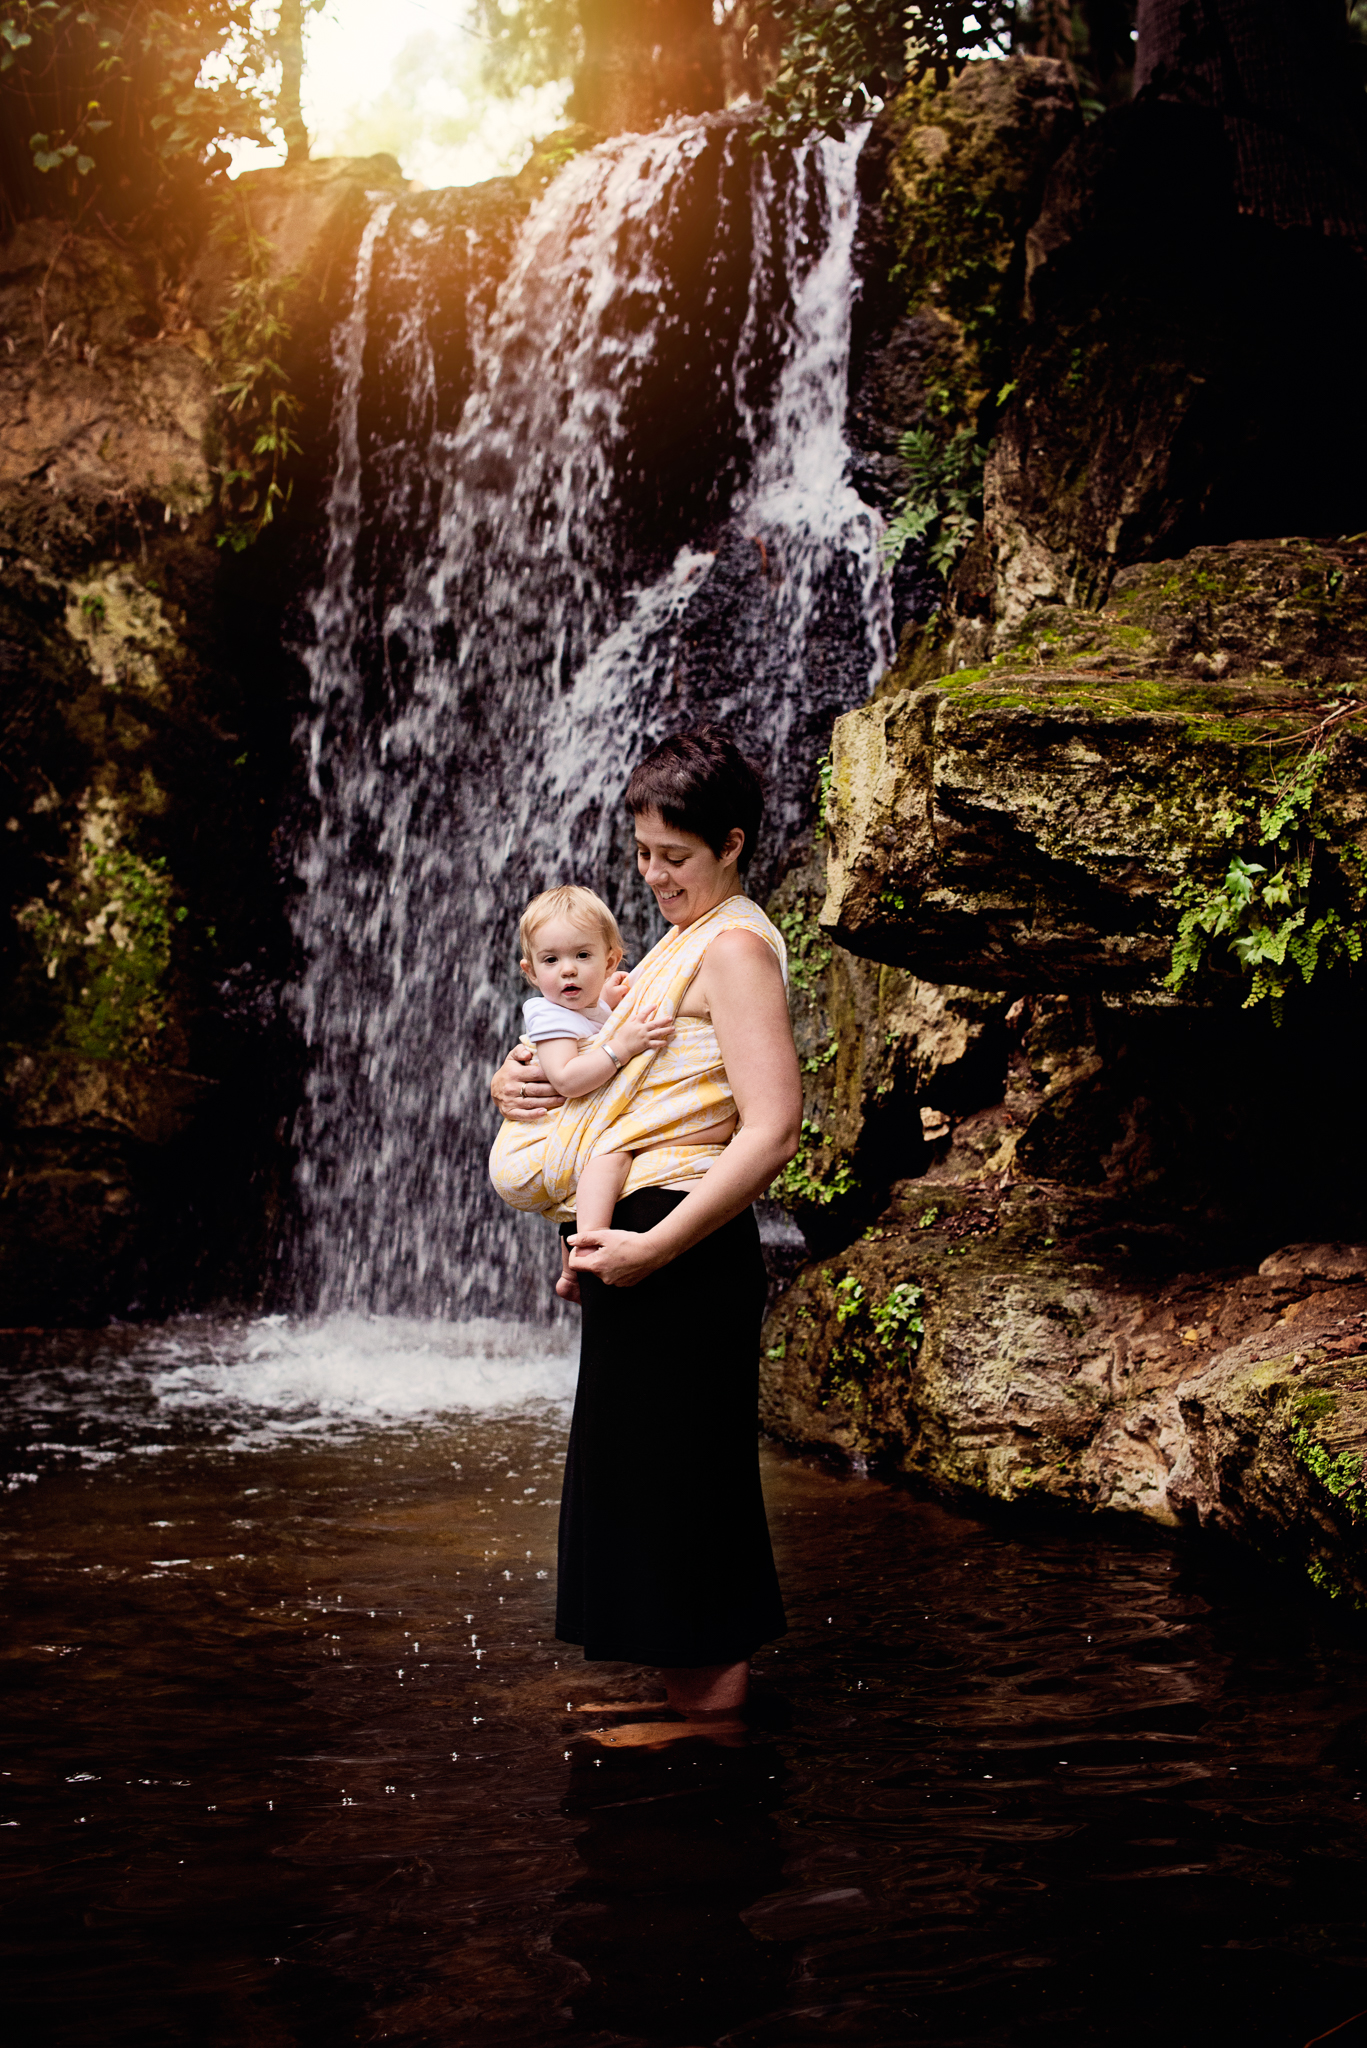 Belle Verdiglione Birth Photography Photographer Pregnancy Maternity Photoshoot Motherhood Family